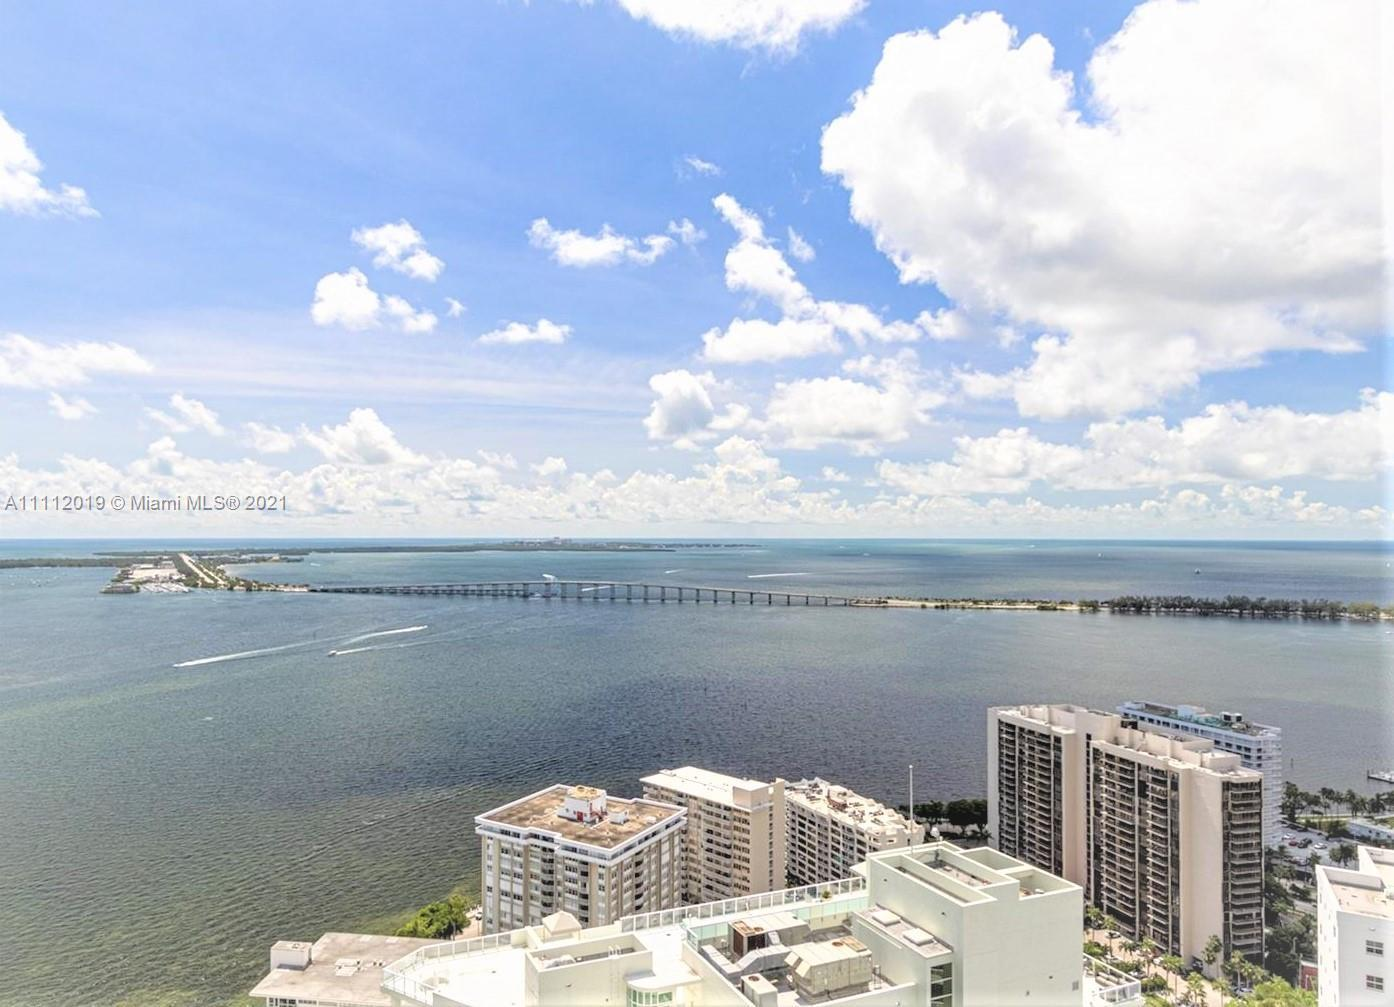 BEAUTIFUL 2 BEDROOM/3 BATH UNIT IN BRICKELL HOUSE ON 39TH FLOOR, TILE THROUGHOUT, HIGH IMPACT WINDOW